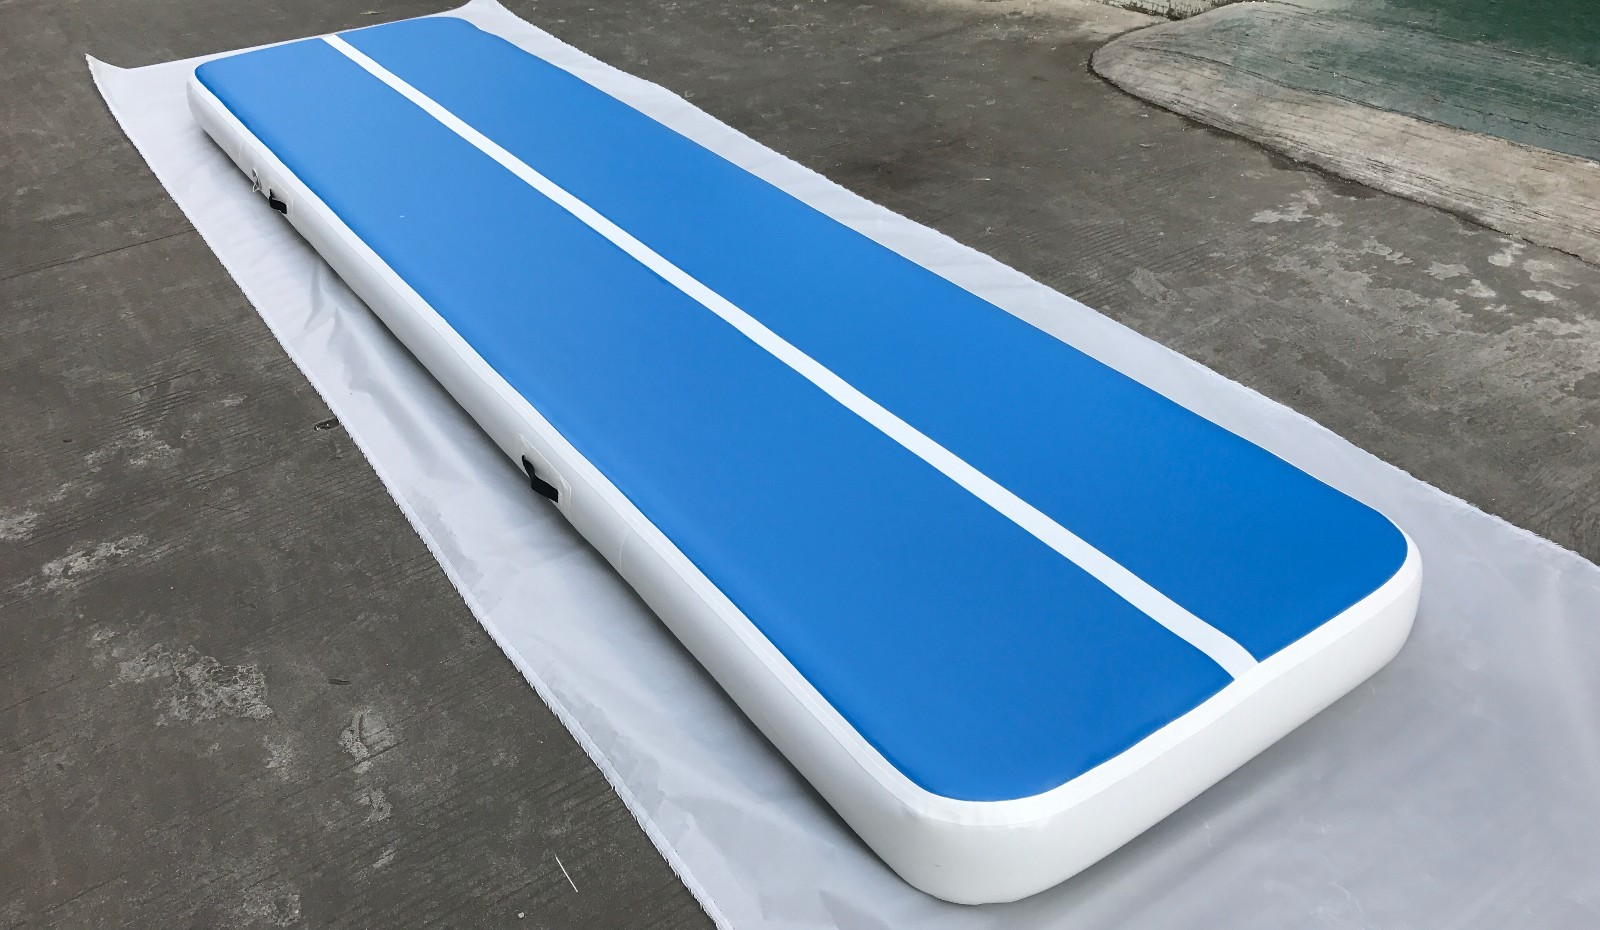 YUQI-High-quality Inflatable Air Track | Yuqi Gymnastic